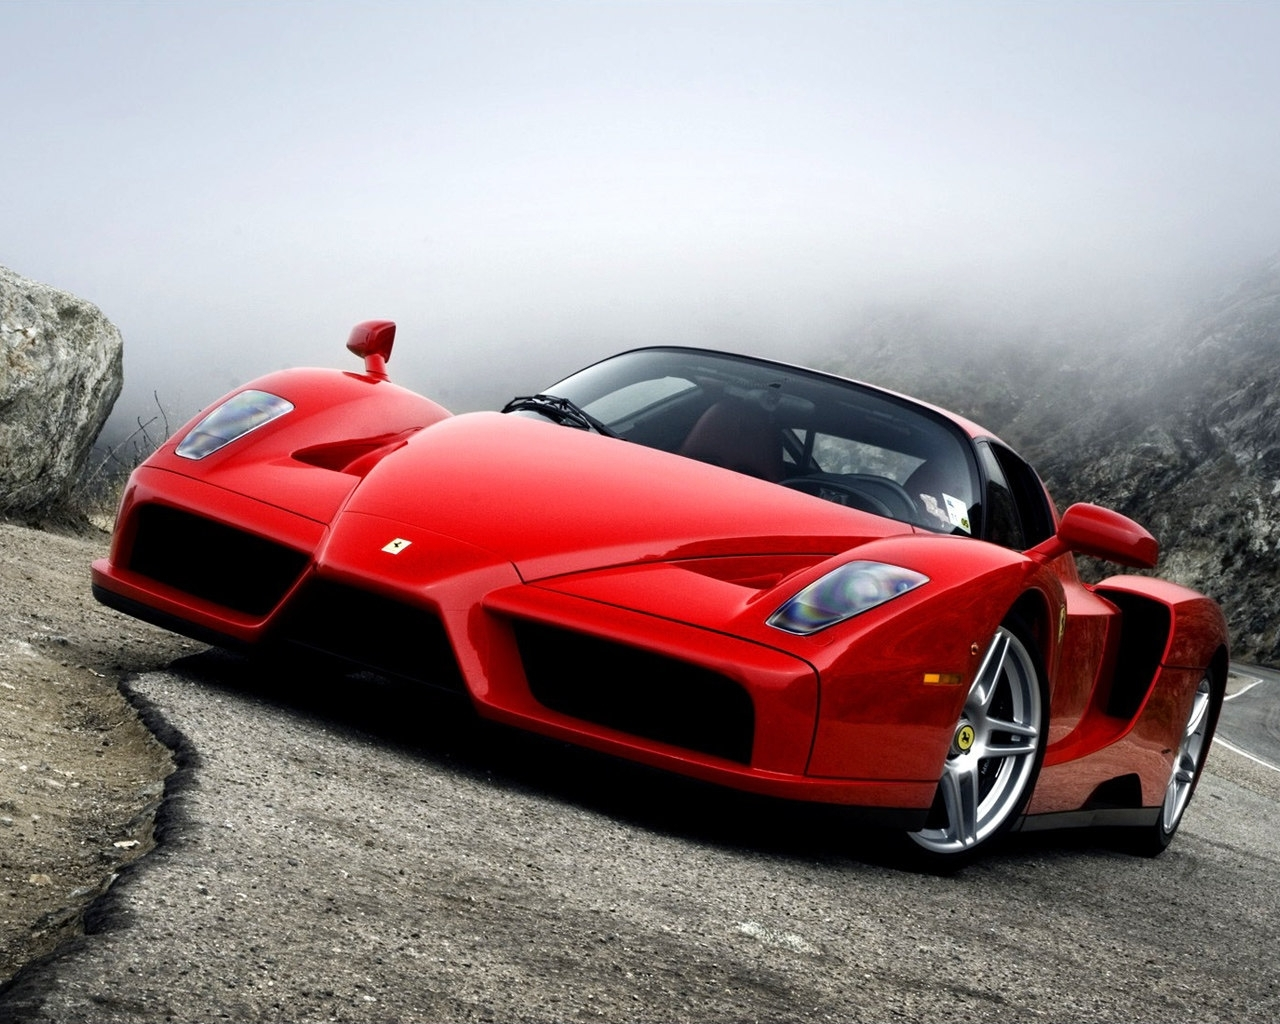 2498 download wallpaper Transport, Auto, Ferrari screensavers and pictures for free